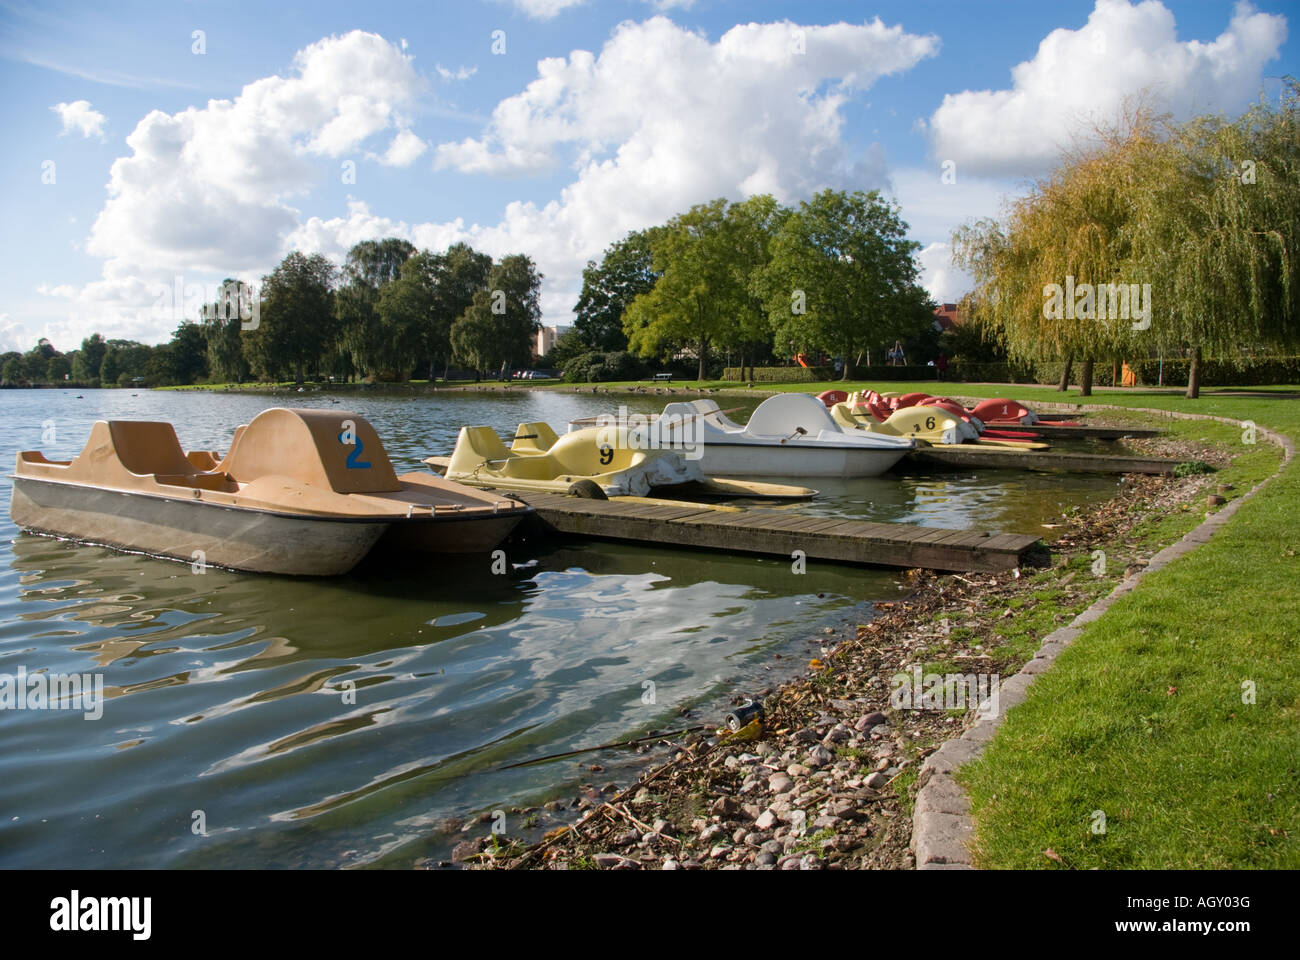 Water cycles at Damparken, Haderslev, Denmark. - Stock Image